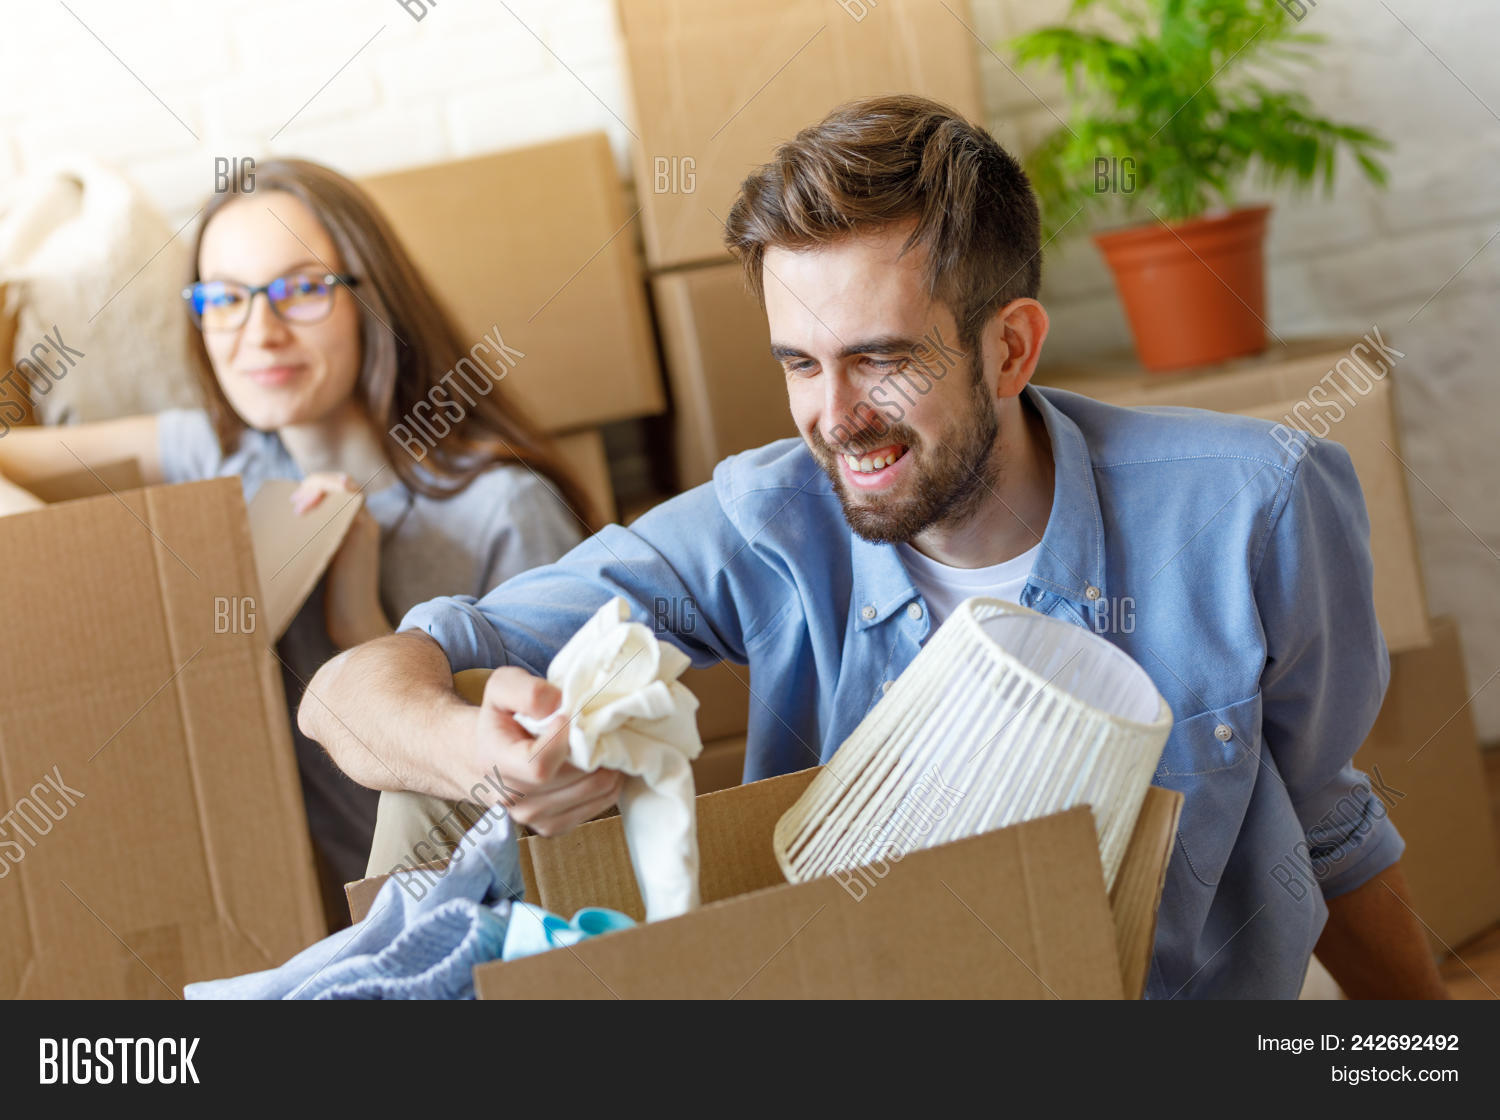 Cheerful Man And Unng Stuff From Carton Boxes In New Apartment Having Fun